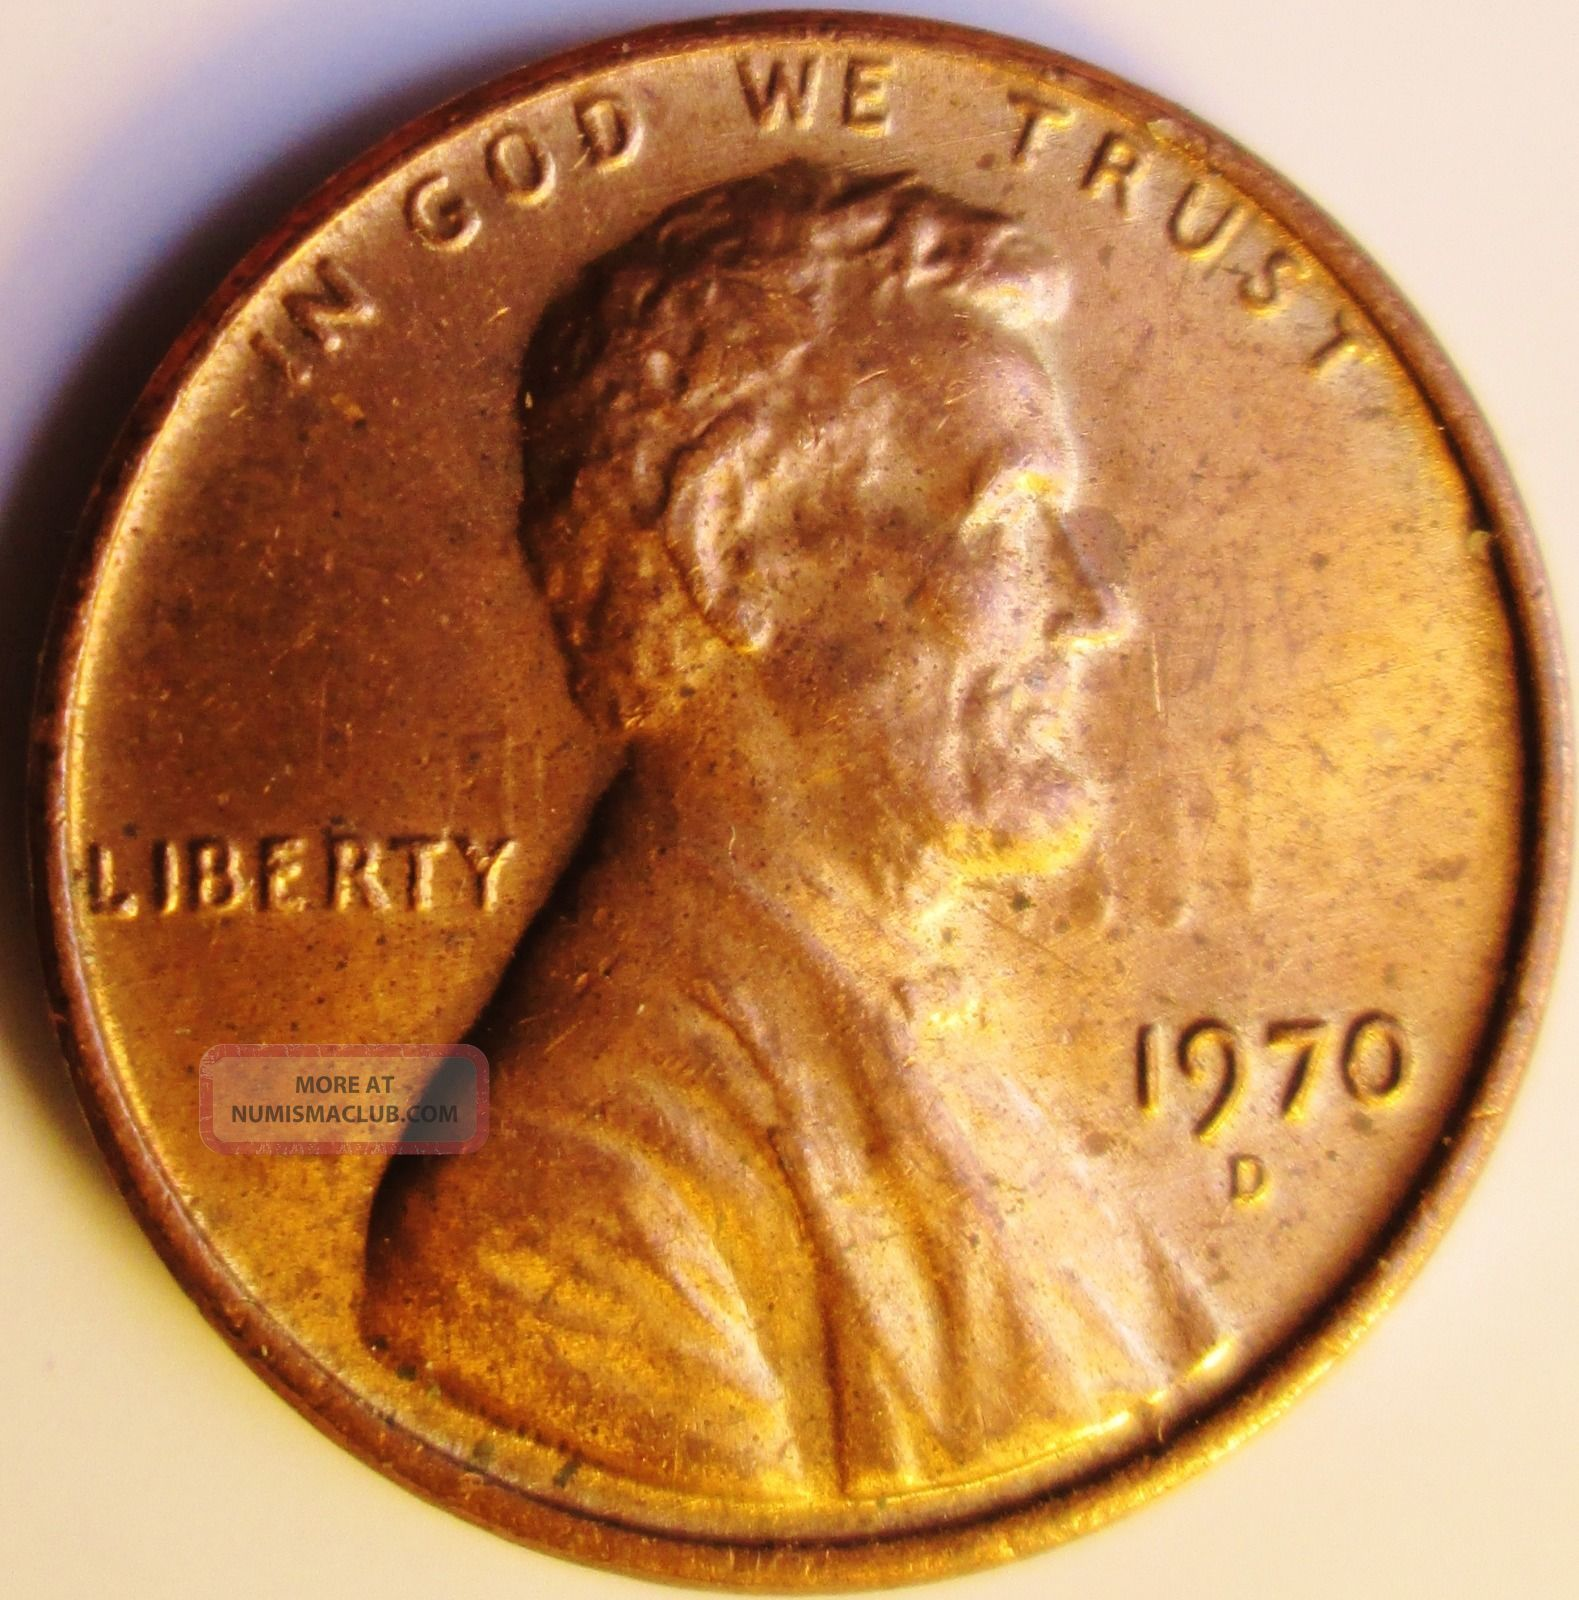 1970 D Lincoln Cent Obverse Die Clash